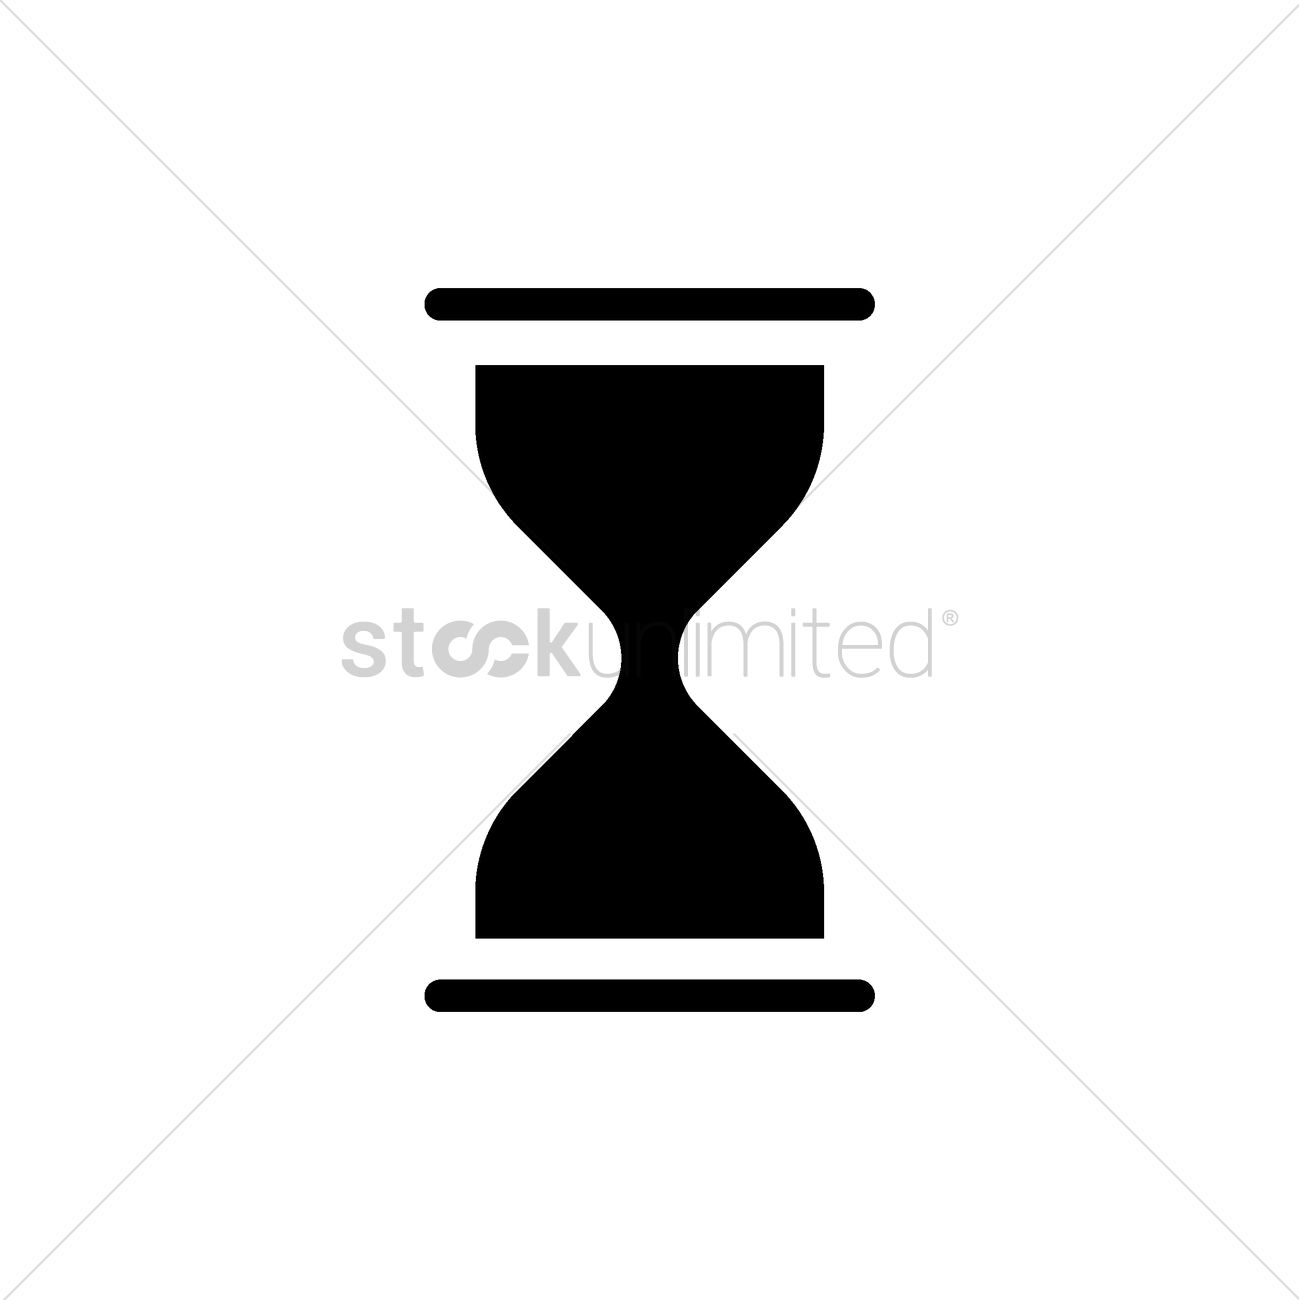 Sand timer vector image 2004003 stockunlimited sand timer vector graphic biocorpaavc Images